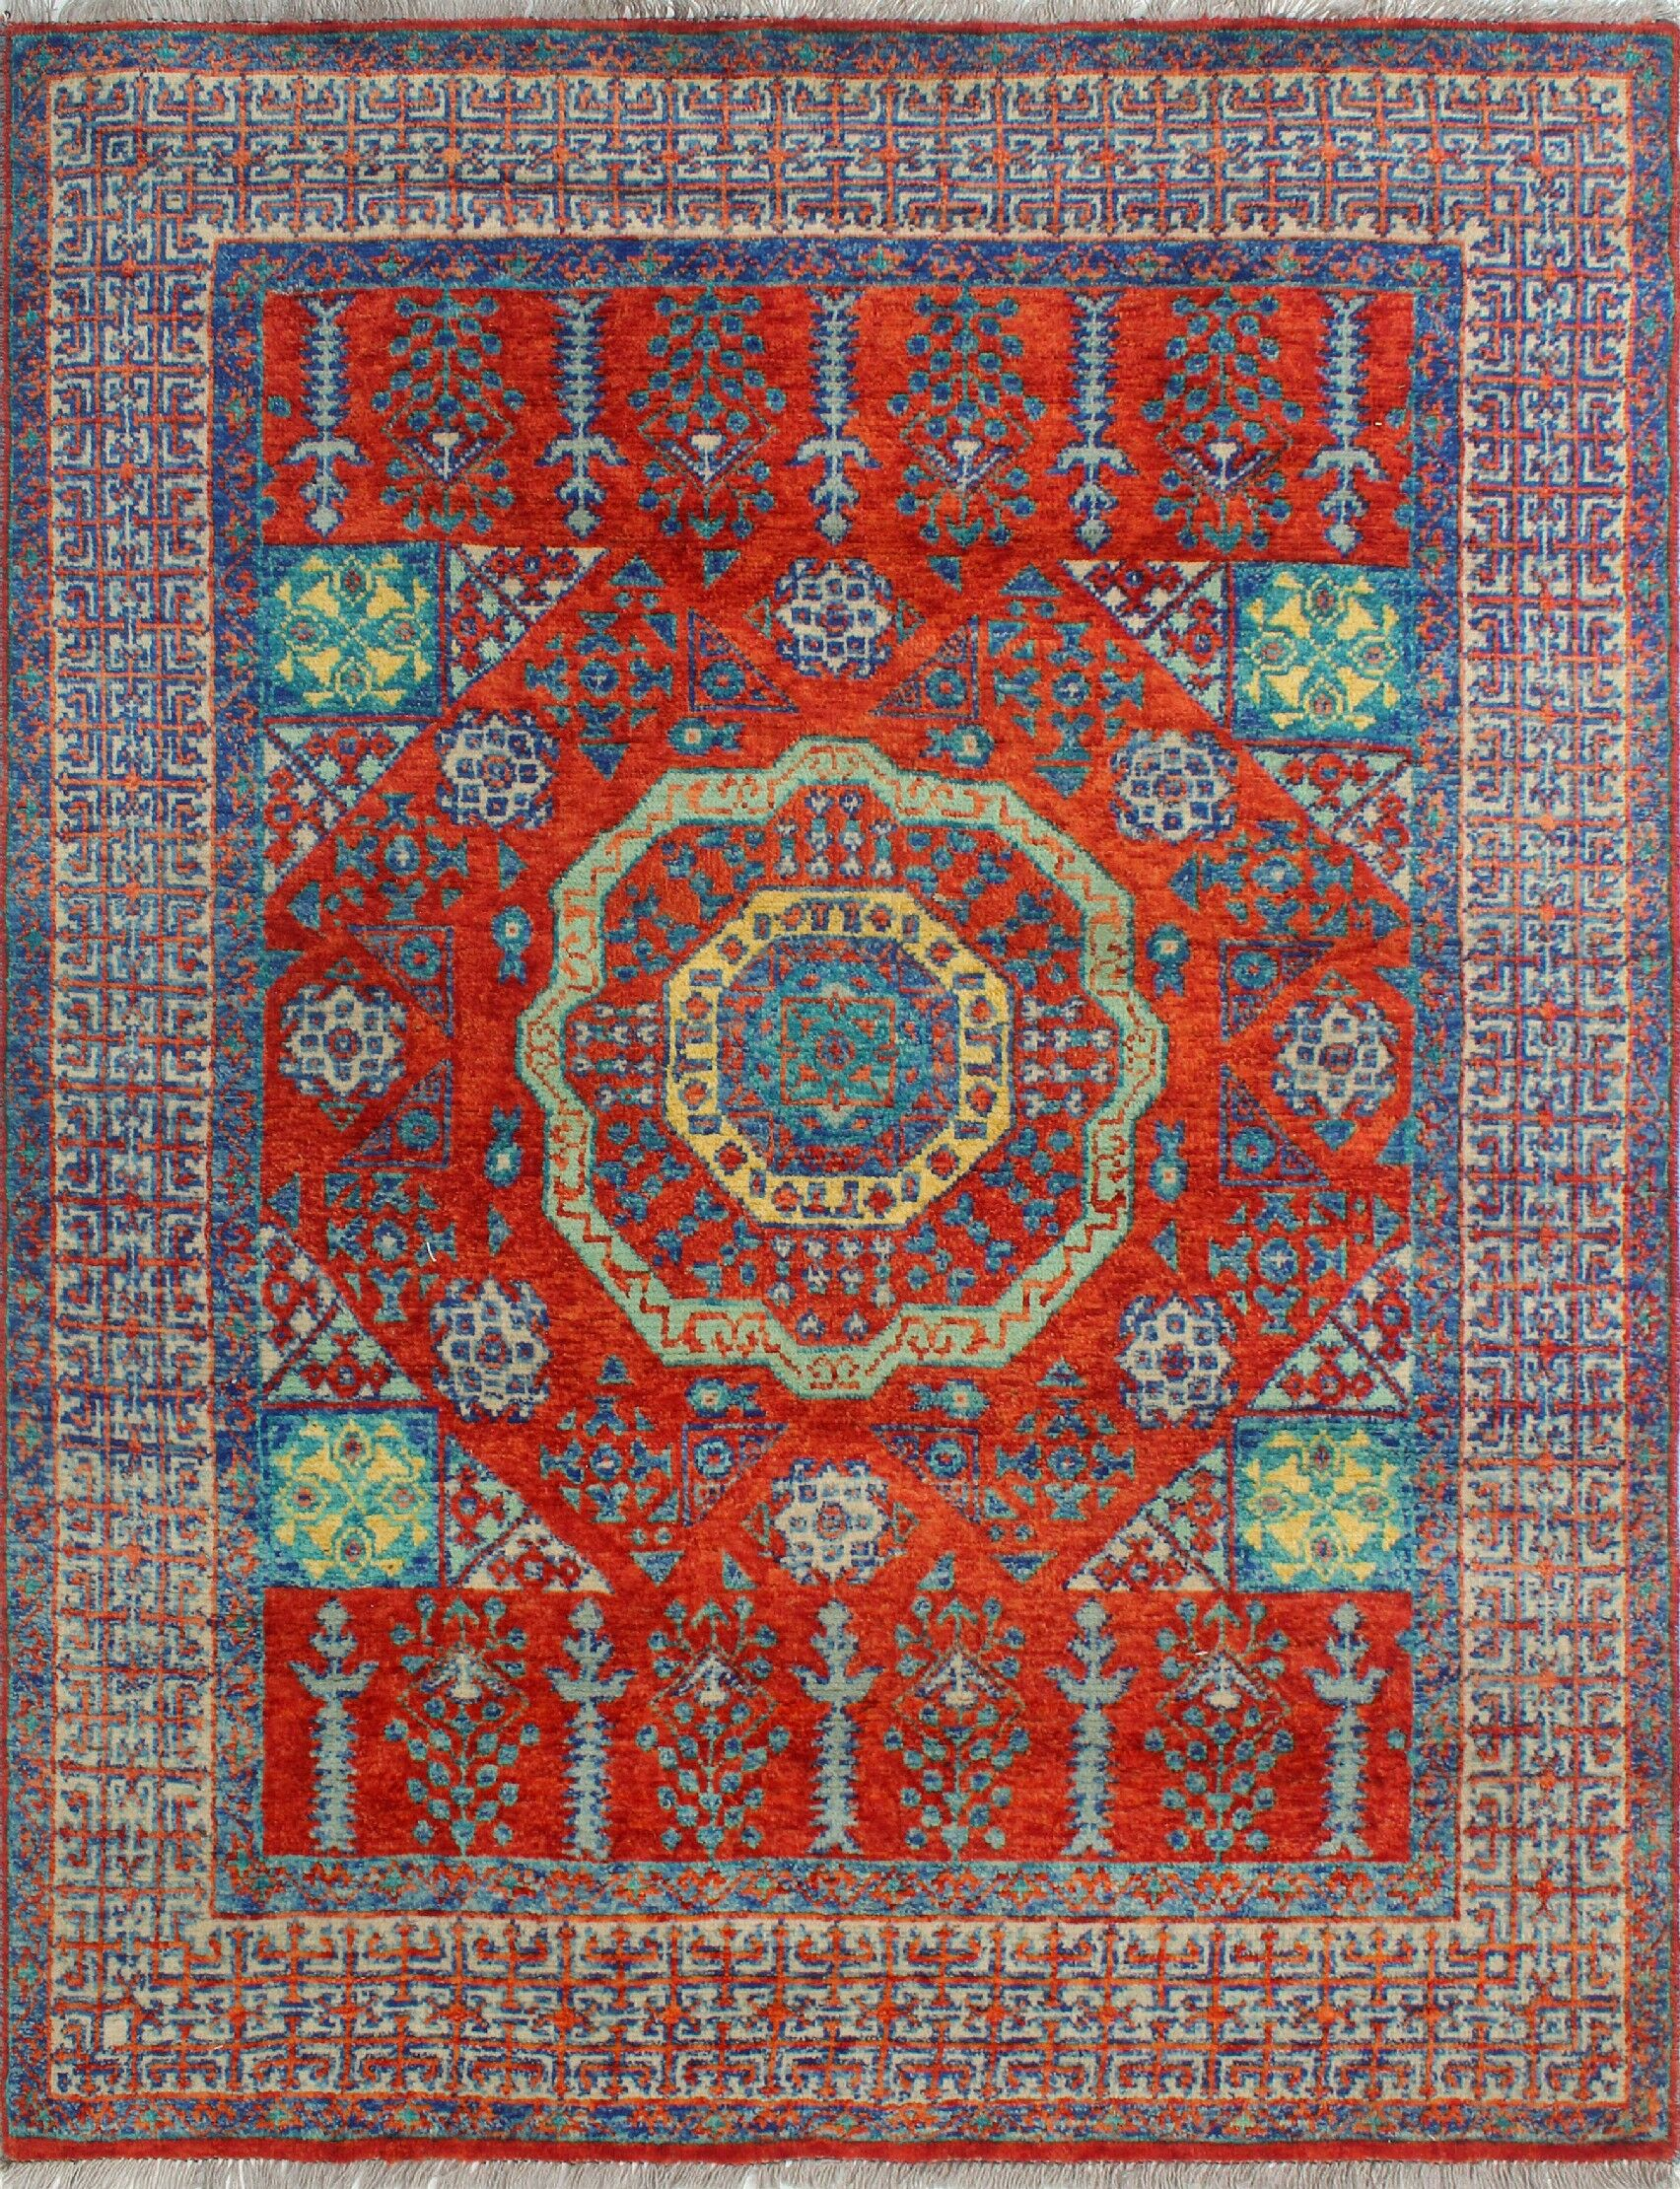 Oneybrook Hand-Knotted Wool Red Area Rug